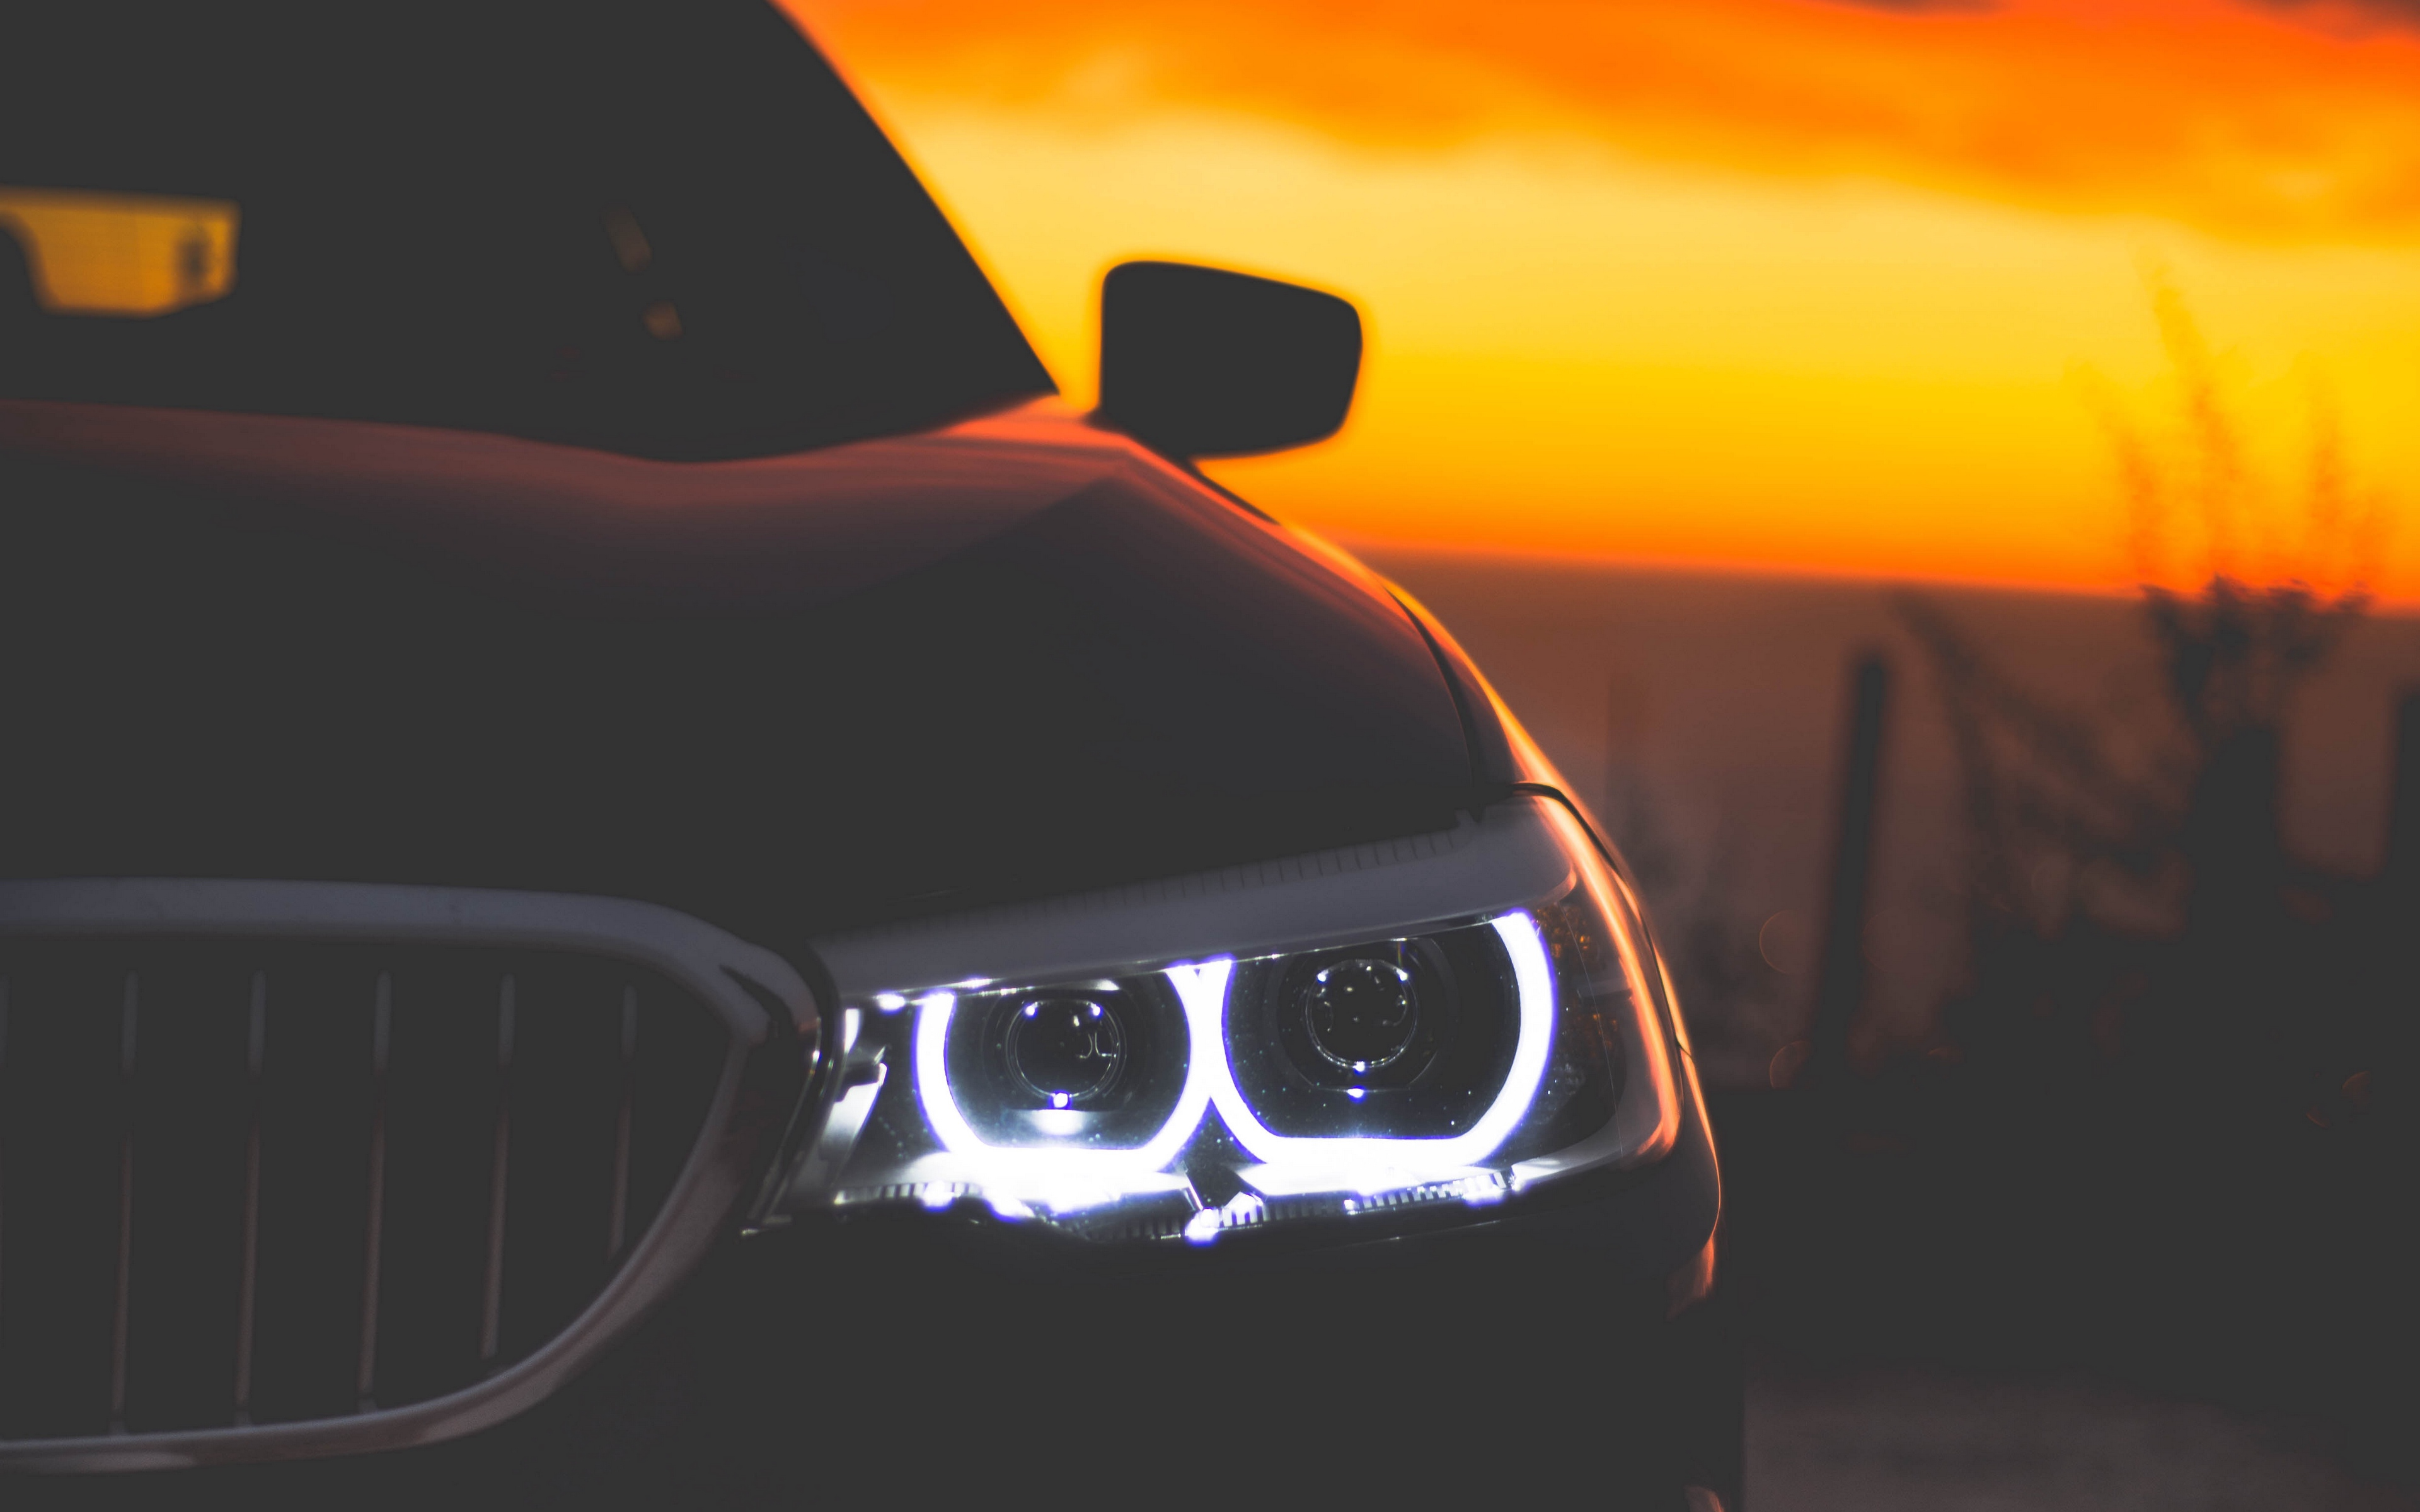 Bmw Lights 4k Hd Cars 4k Wallpapers Images Backgrounds Photos And Pictures